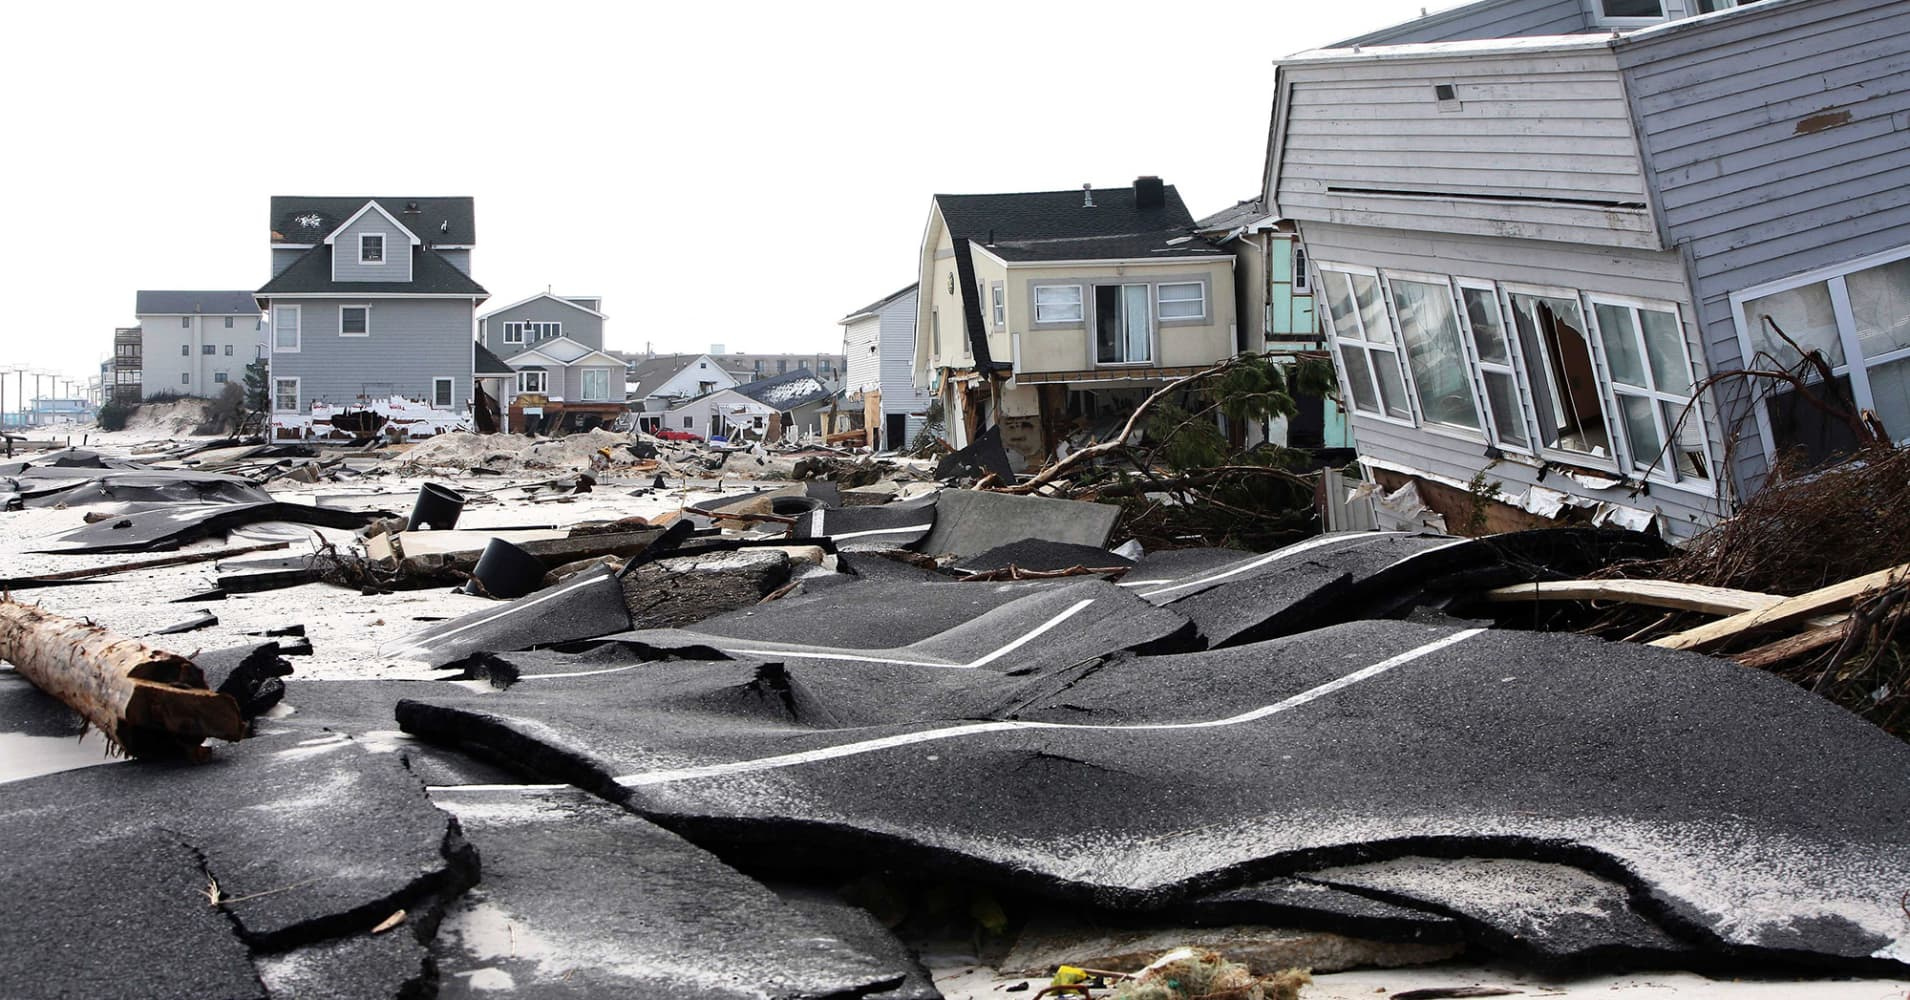 Streets damaged in Ortley Beach, New Jersey.